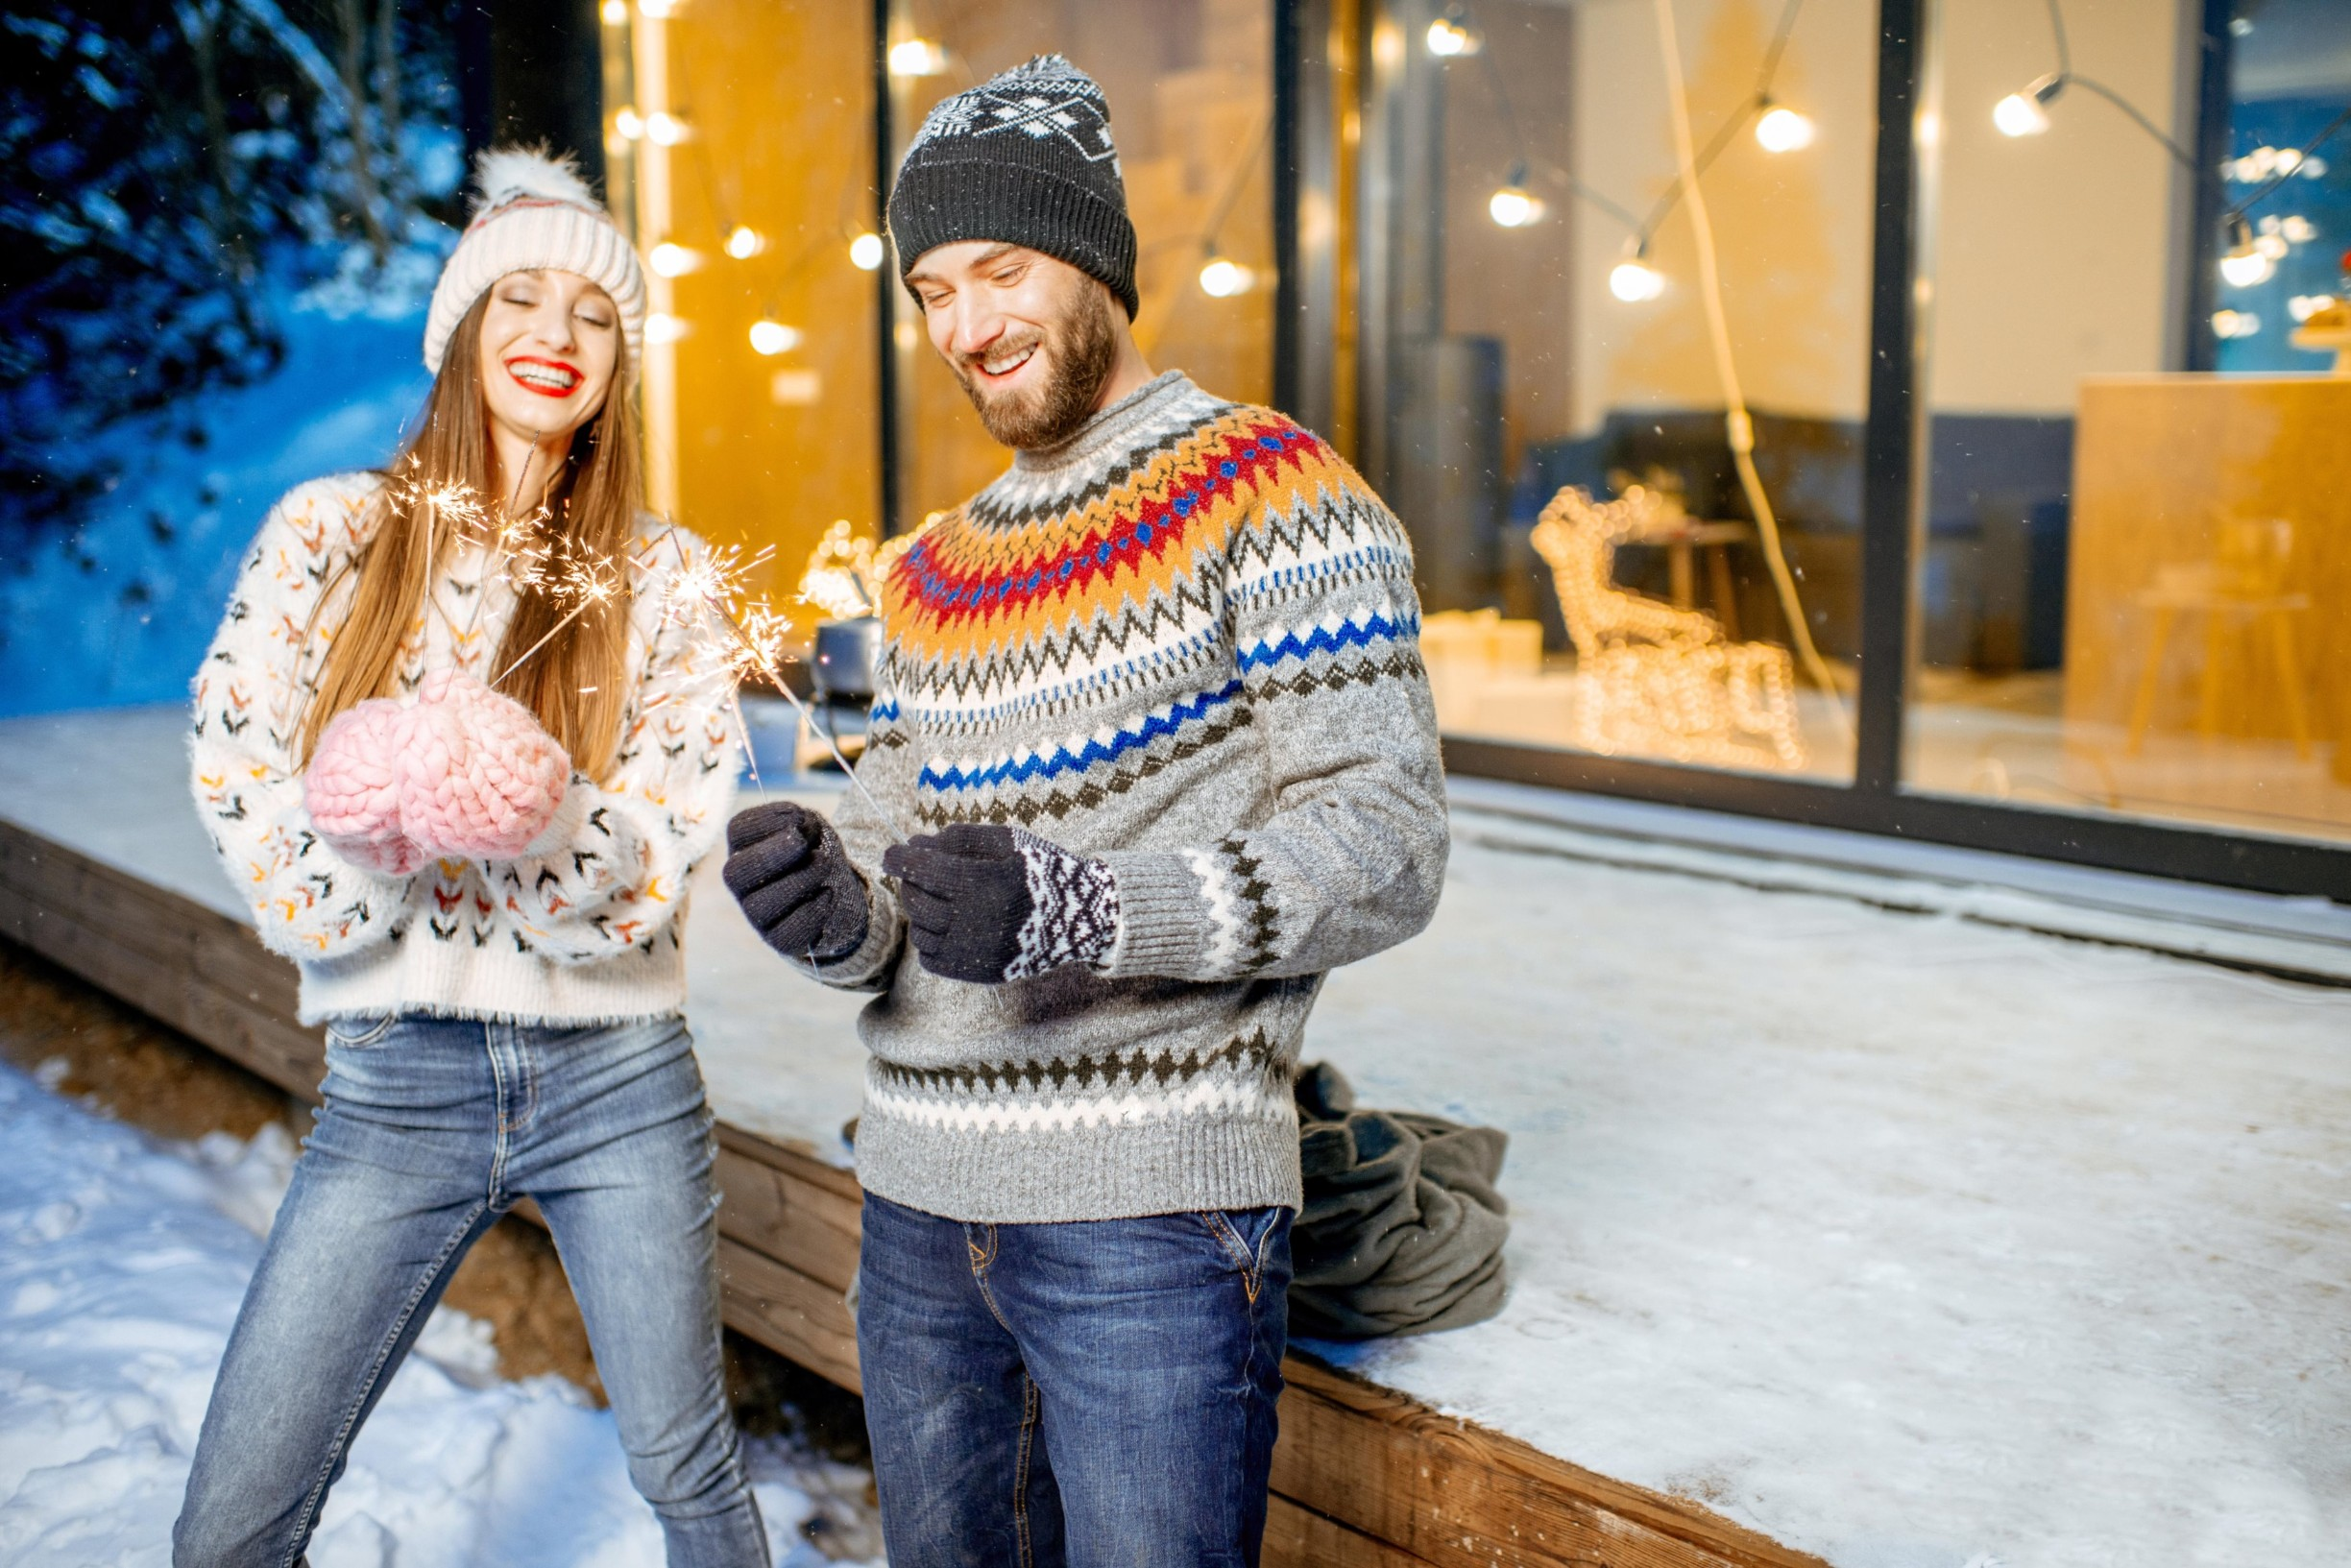 Young happy couple dressed in sweaters celebrating winter holidays with bengal fire in front of a beautiful decorated house, Image: 403492188, License: Royalty-free, Restrictions: , Model Release: yes, Credit line: RossHelen editorial / Alamy / Alamy / Profimedia